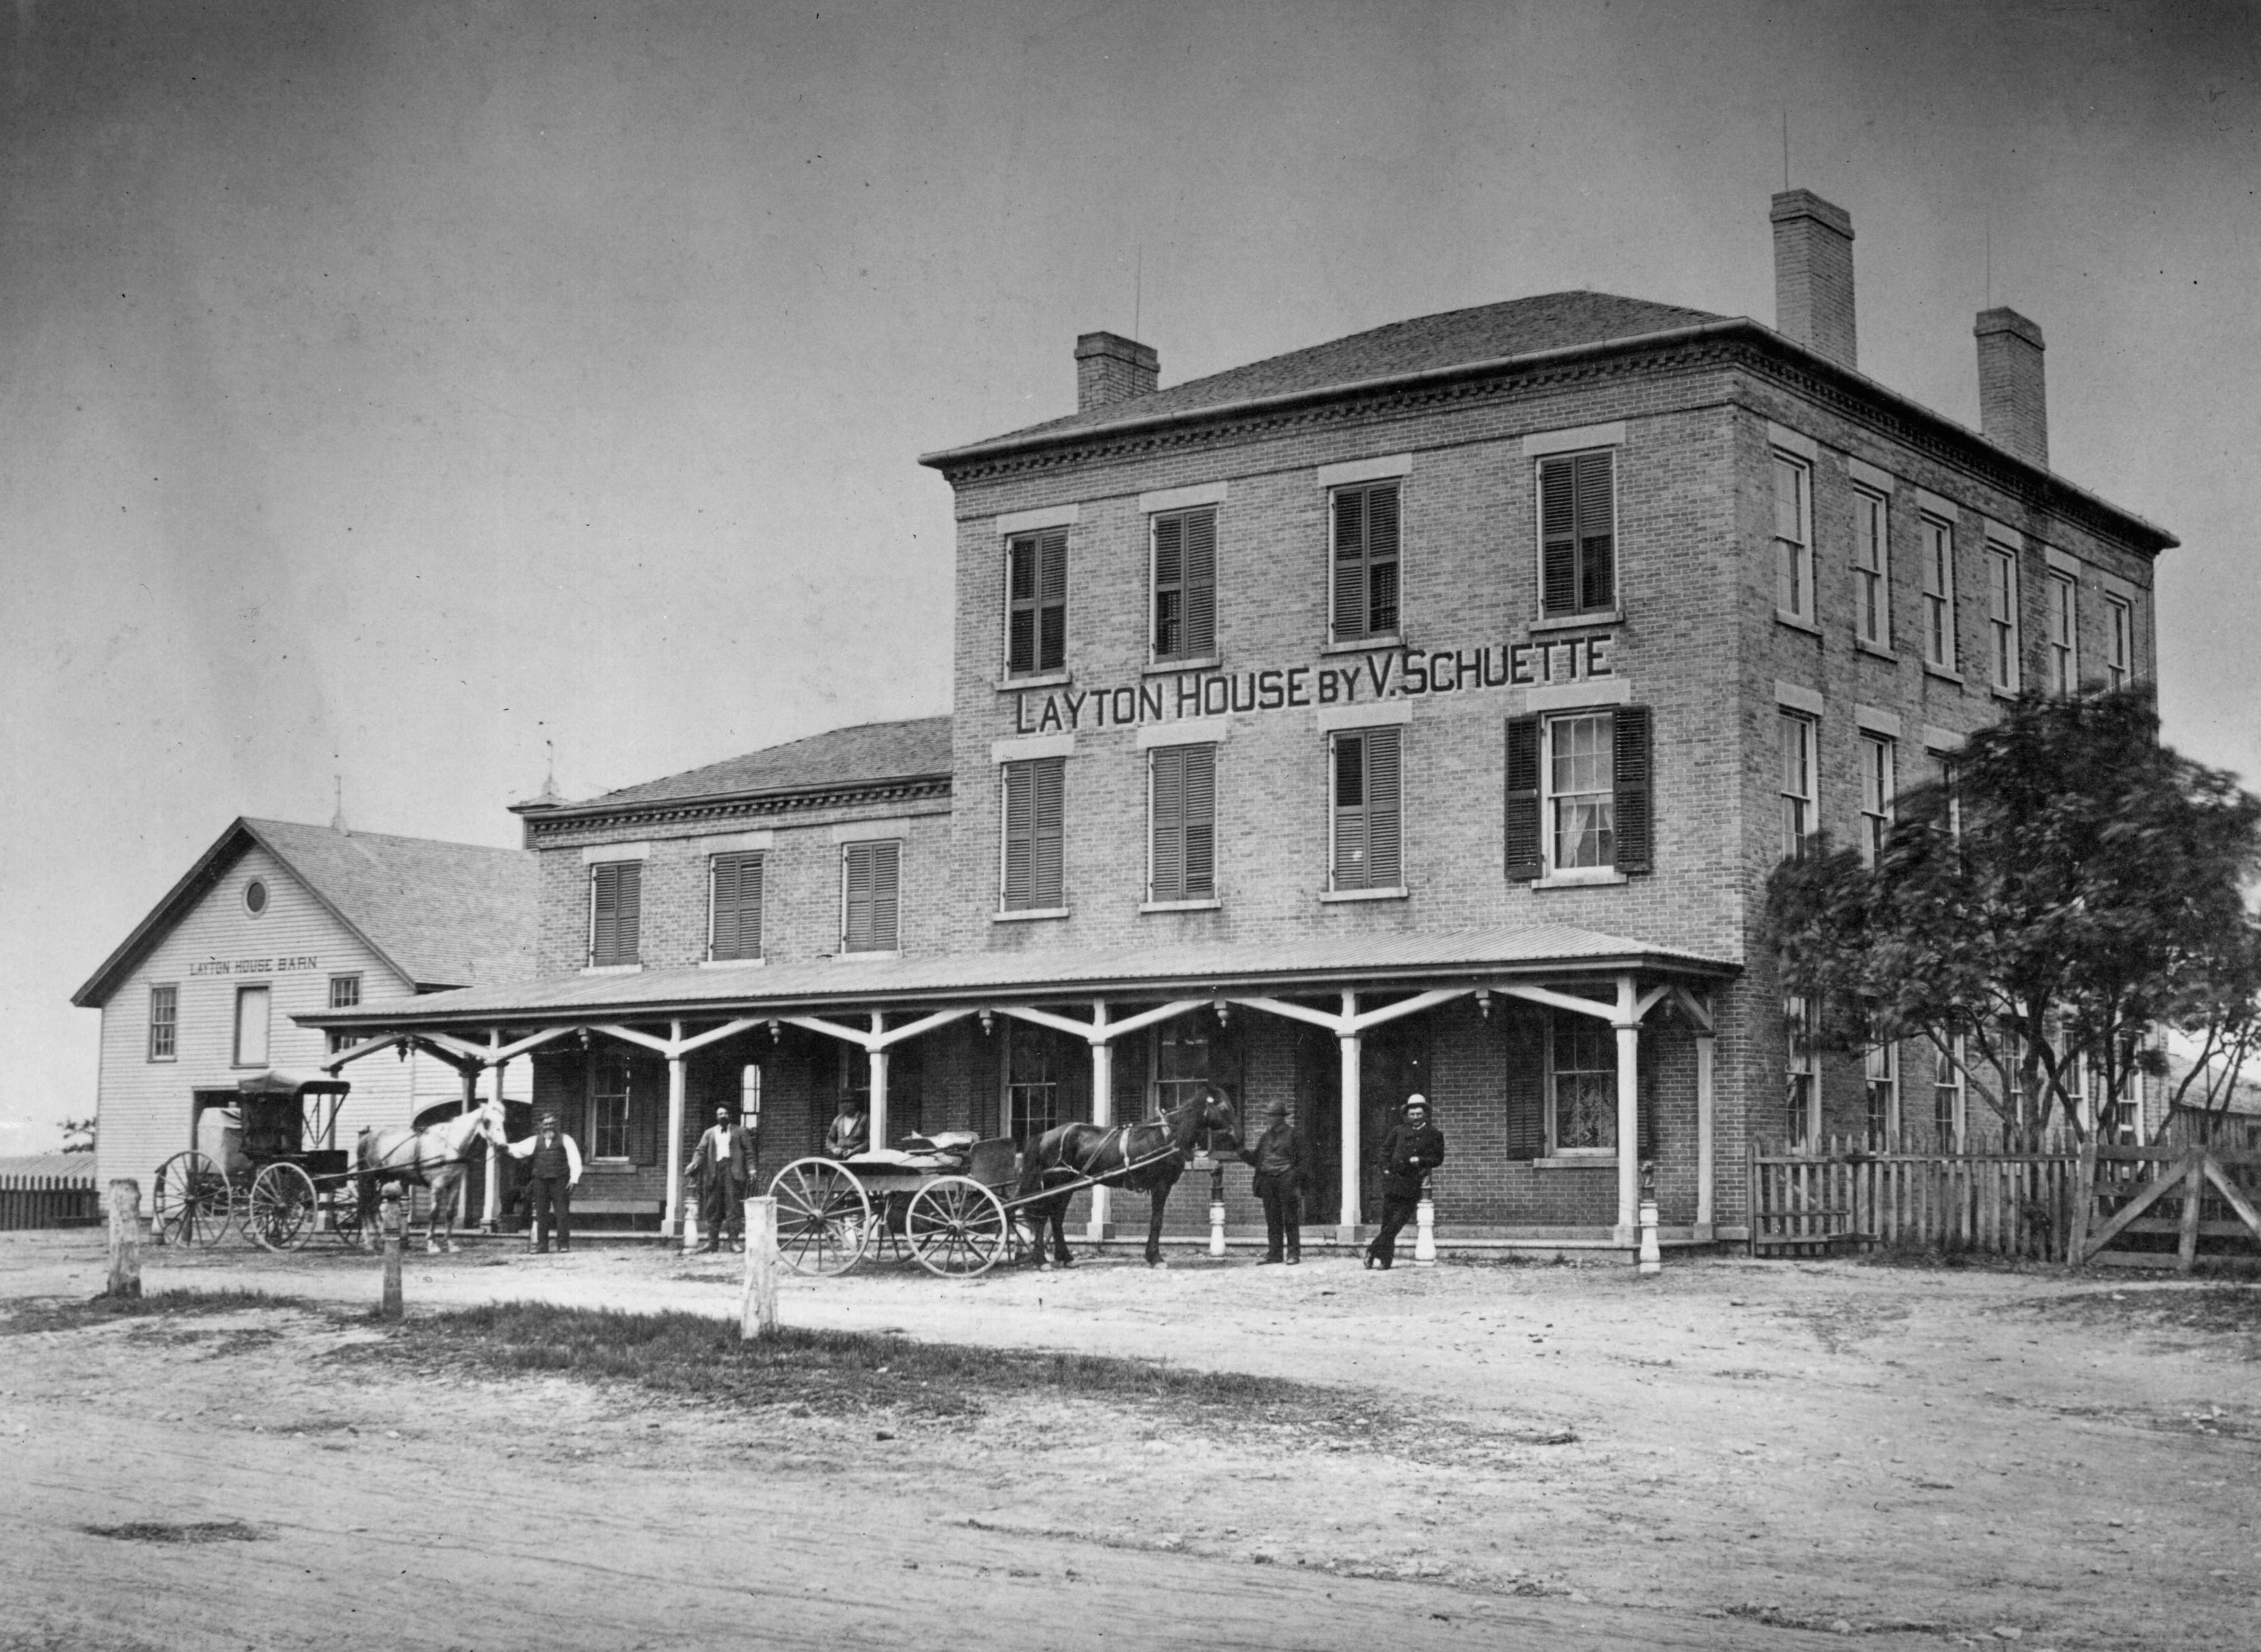 <table class=&quot;lightbox&quot;><tr><td colspan=2 class=&quot;lightbox-title&quot;>The Layton House</td></tr><tr><td colspan=2 class=&quot;lightbox-caption&quot;>The Layton House, built in 1848, served travelers through what is now Hales Corners in the nineteenth century, shown in this photograph from 1880.</td></tr><tr><td colspan=2 class=&quot;lightbox-spacer&quot;></td></tr><tr class=&quot;lightbox-detail&quot;><td class=&quot;cell-title&quot;>Source: </td><td class=&quot;cell-value&quot;>From the Historic Photo Collection of the Milwaukee Public Library. Reprinted with permission.<br /><a href=&quot;http://content.mpl.org/cdm/singleitem/collection/HstoricPho/id/3079/rec/5&quot; target=&quot;_blank&quot;>Milwaukee Public Library</a></td></tr><tr class=&quot;filler-row&quot;><td colspan=2>&nbsp;</td></tr></table>